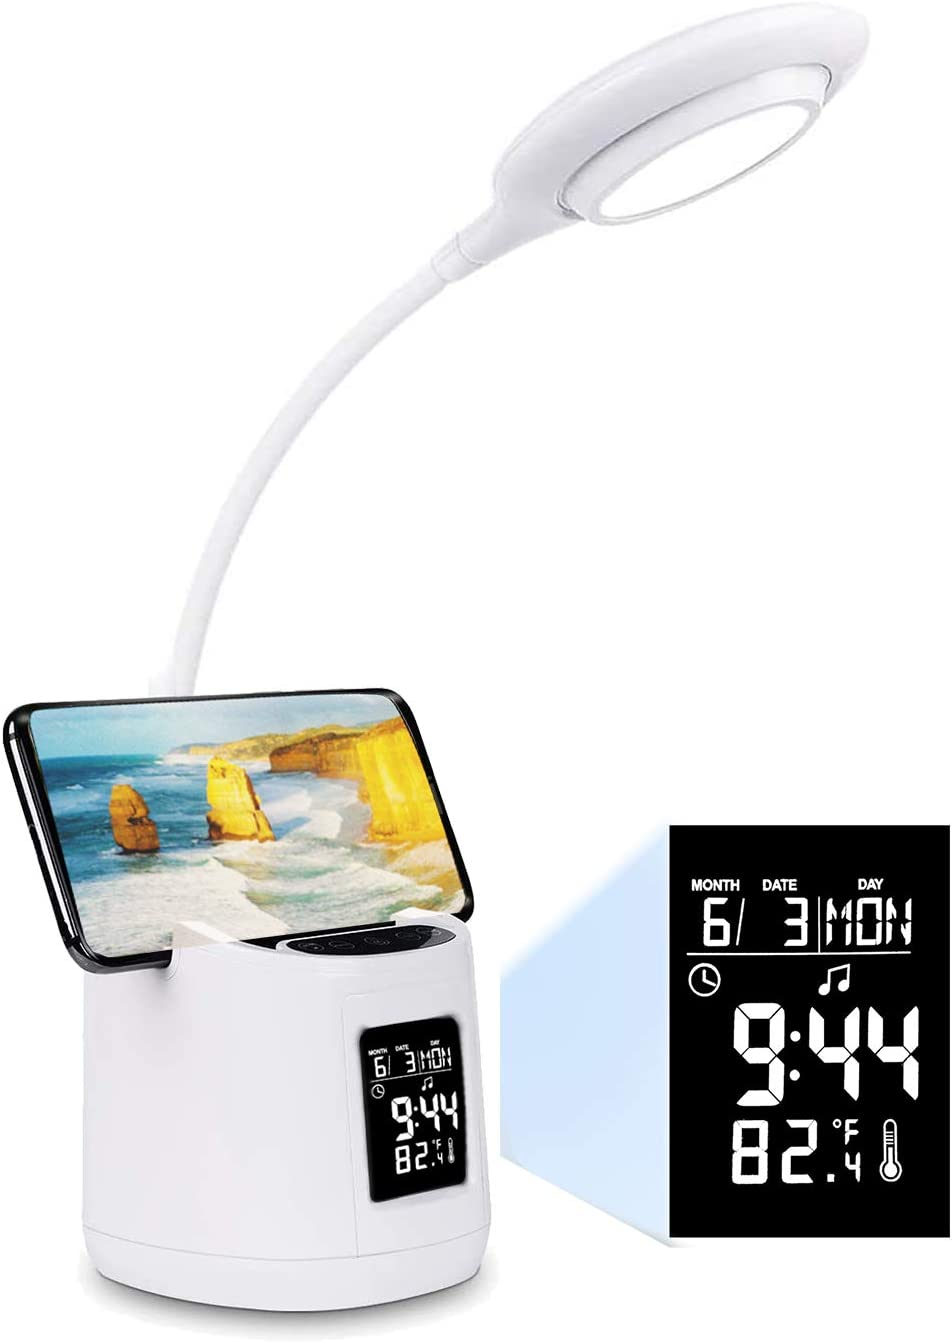 Hokone Study LED Desk Lamp with Screen Calendar Temperature, Kids Dimmable LED Table Lamp with Pen&Phone Holder Clock, Flexible Gooseneck Desk Reading Light for Students, 2000mAh Battery Operated